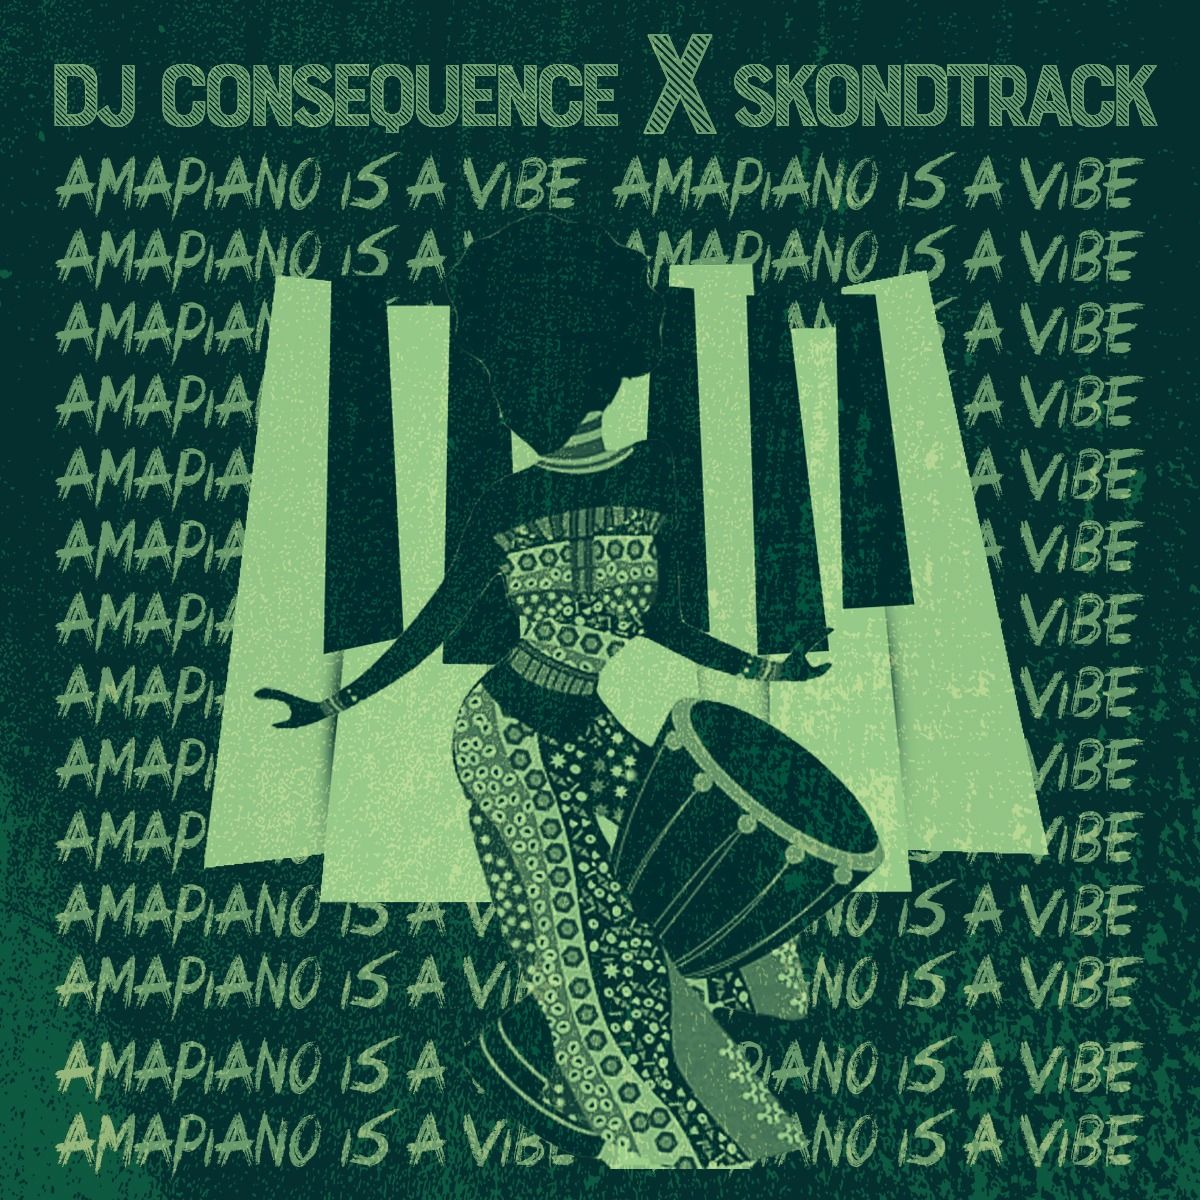 DOWNLOAD DJ Consequence & Skondtrack Amapiano is a Vibe EP